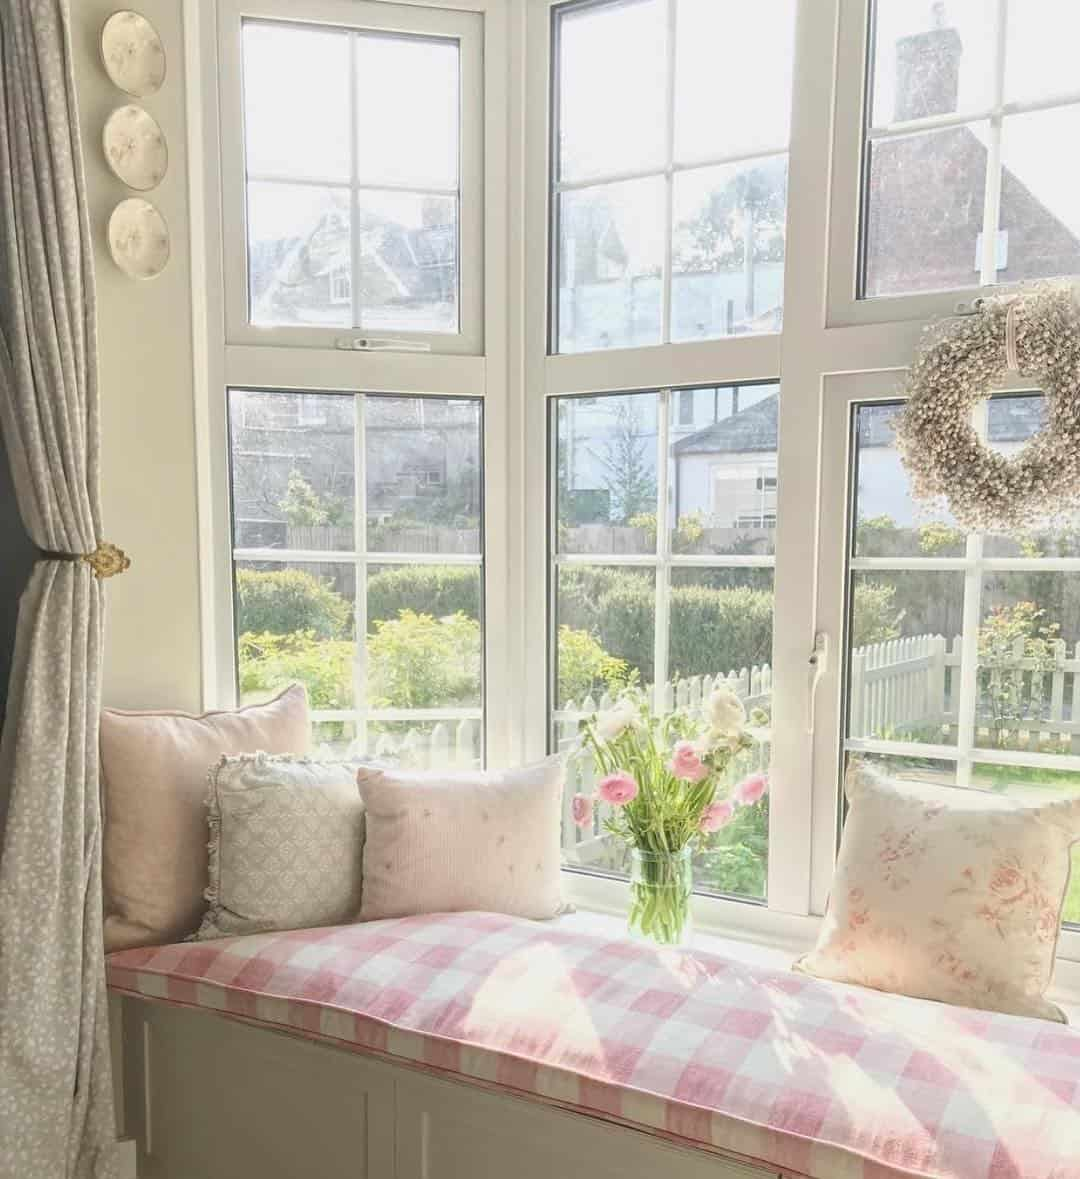 22 Brilliant Ideas for Window Seats with Different Cushions